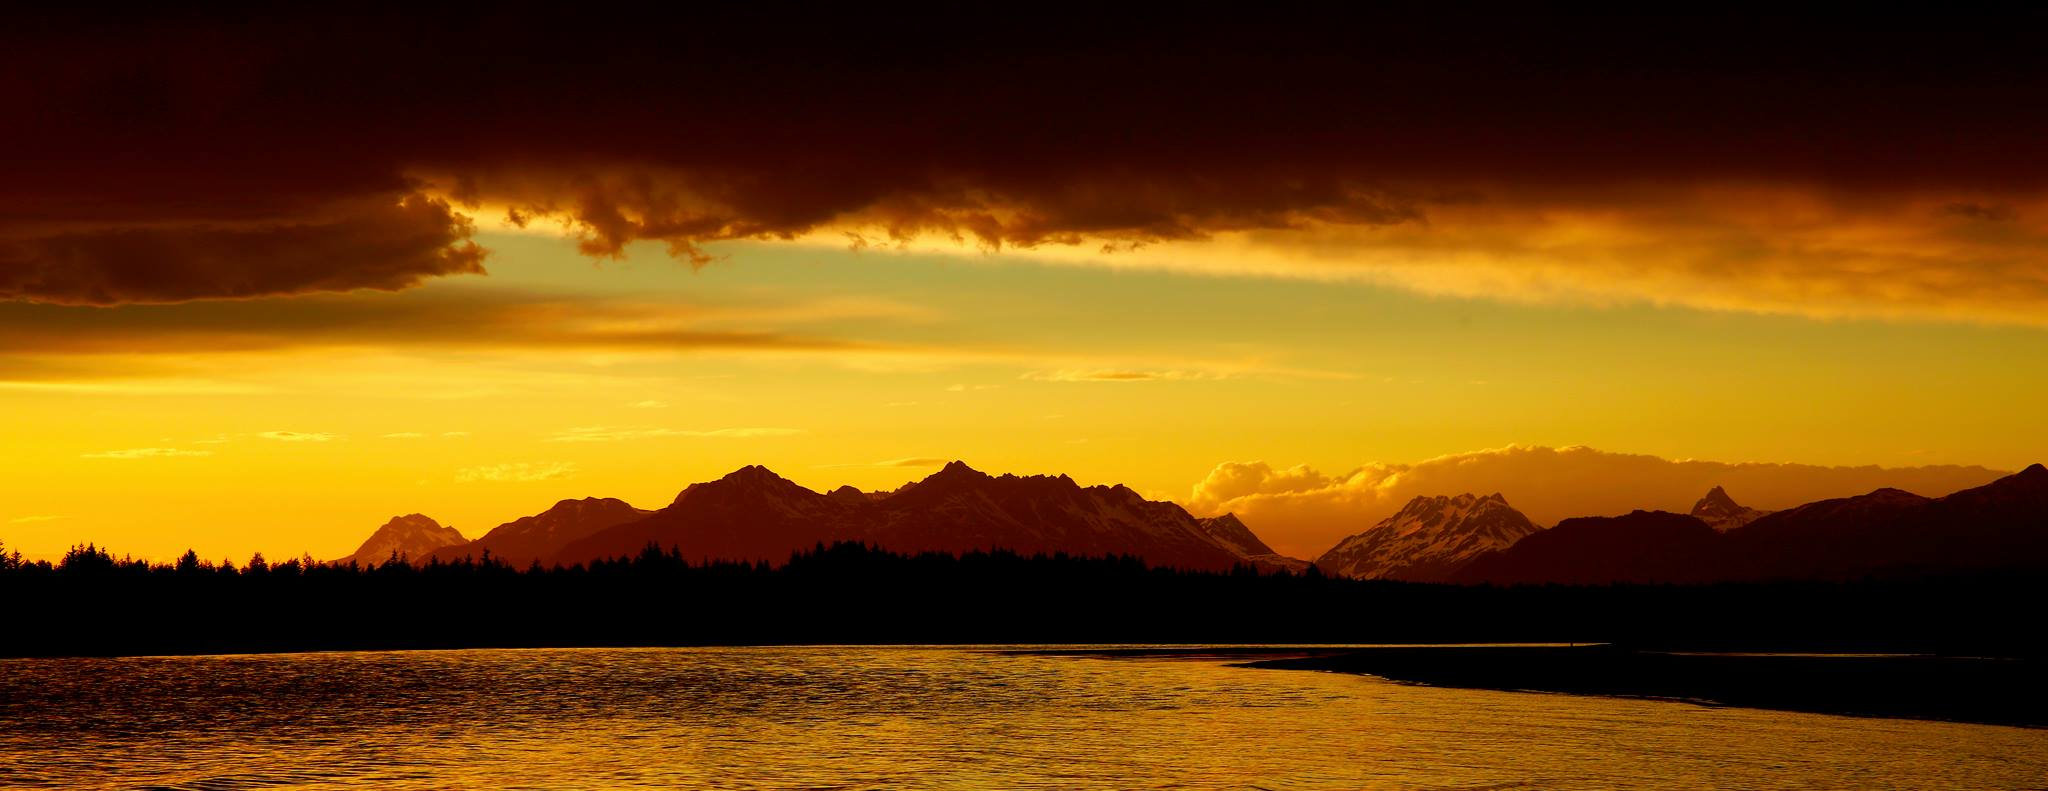 Sunset in AK by Walter Mather.023.jpg